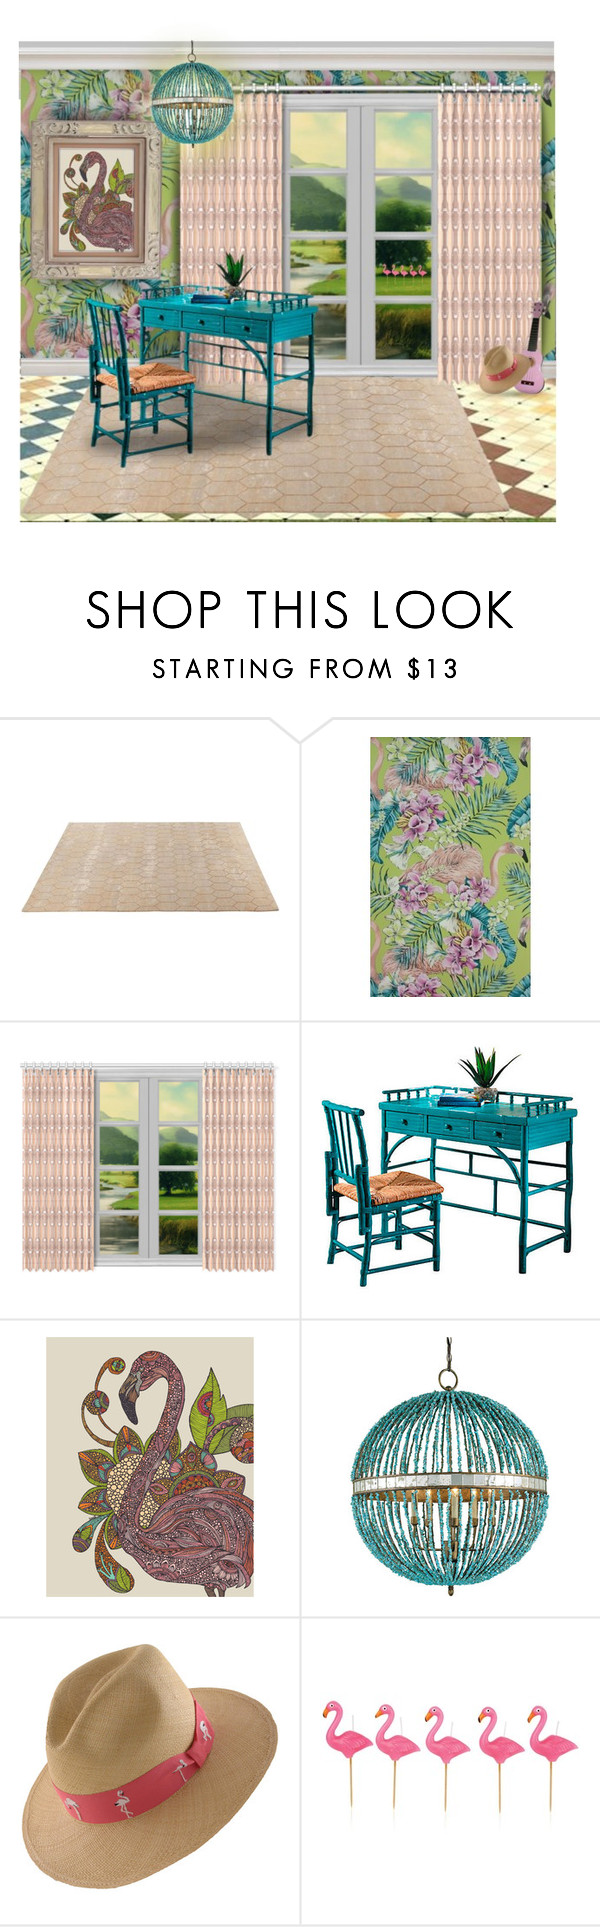 """Try Concentrating at the Flamingo Desk"" by jesking ❤ liked on Polyvore featuring interior, interiors, interior design, home, home decor, interior decorating, ABC Italia, Matthew Williamson, LORENZ and Sunnylife"